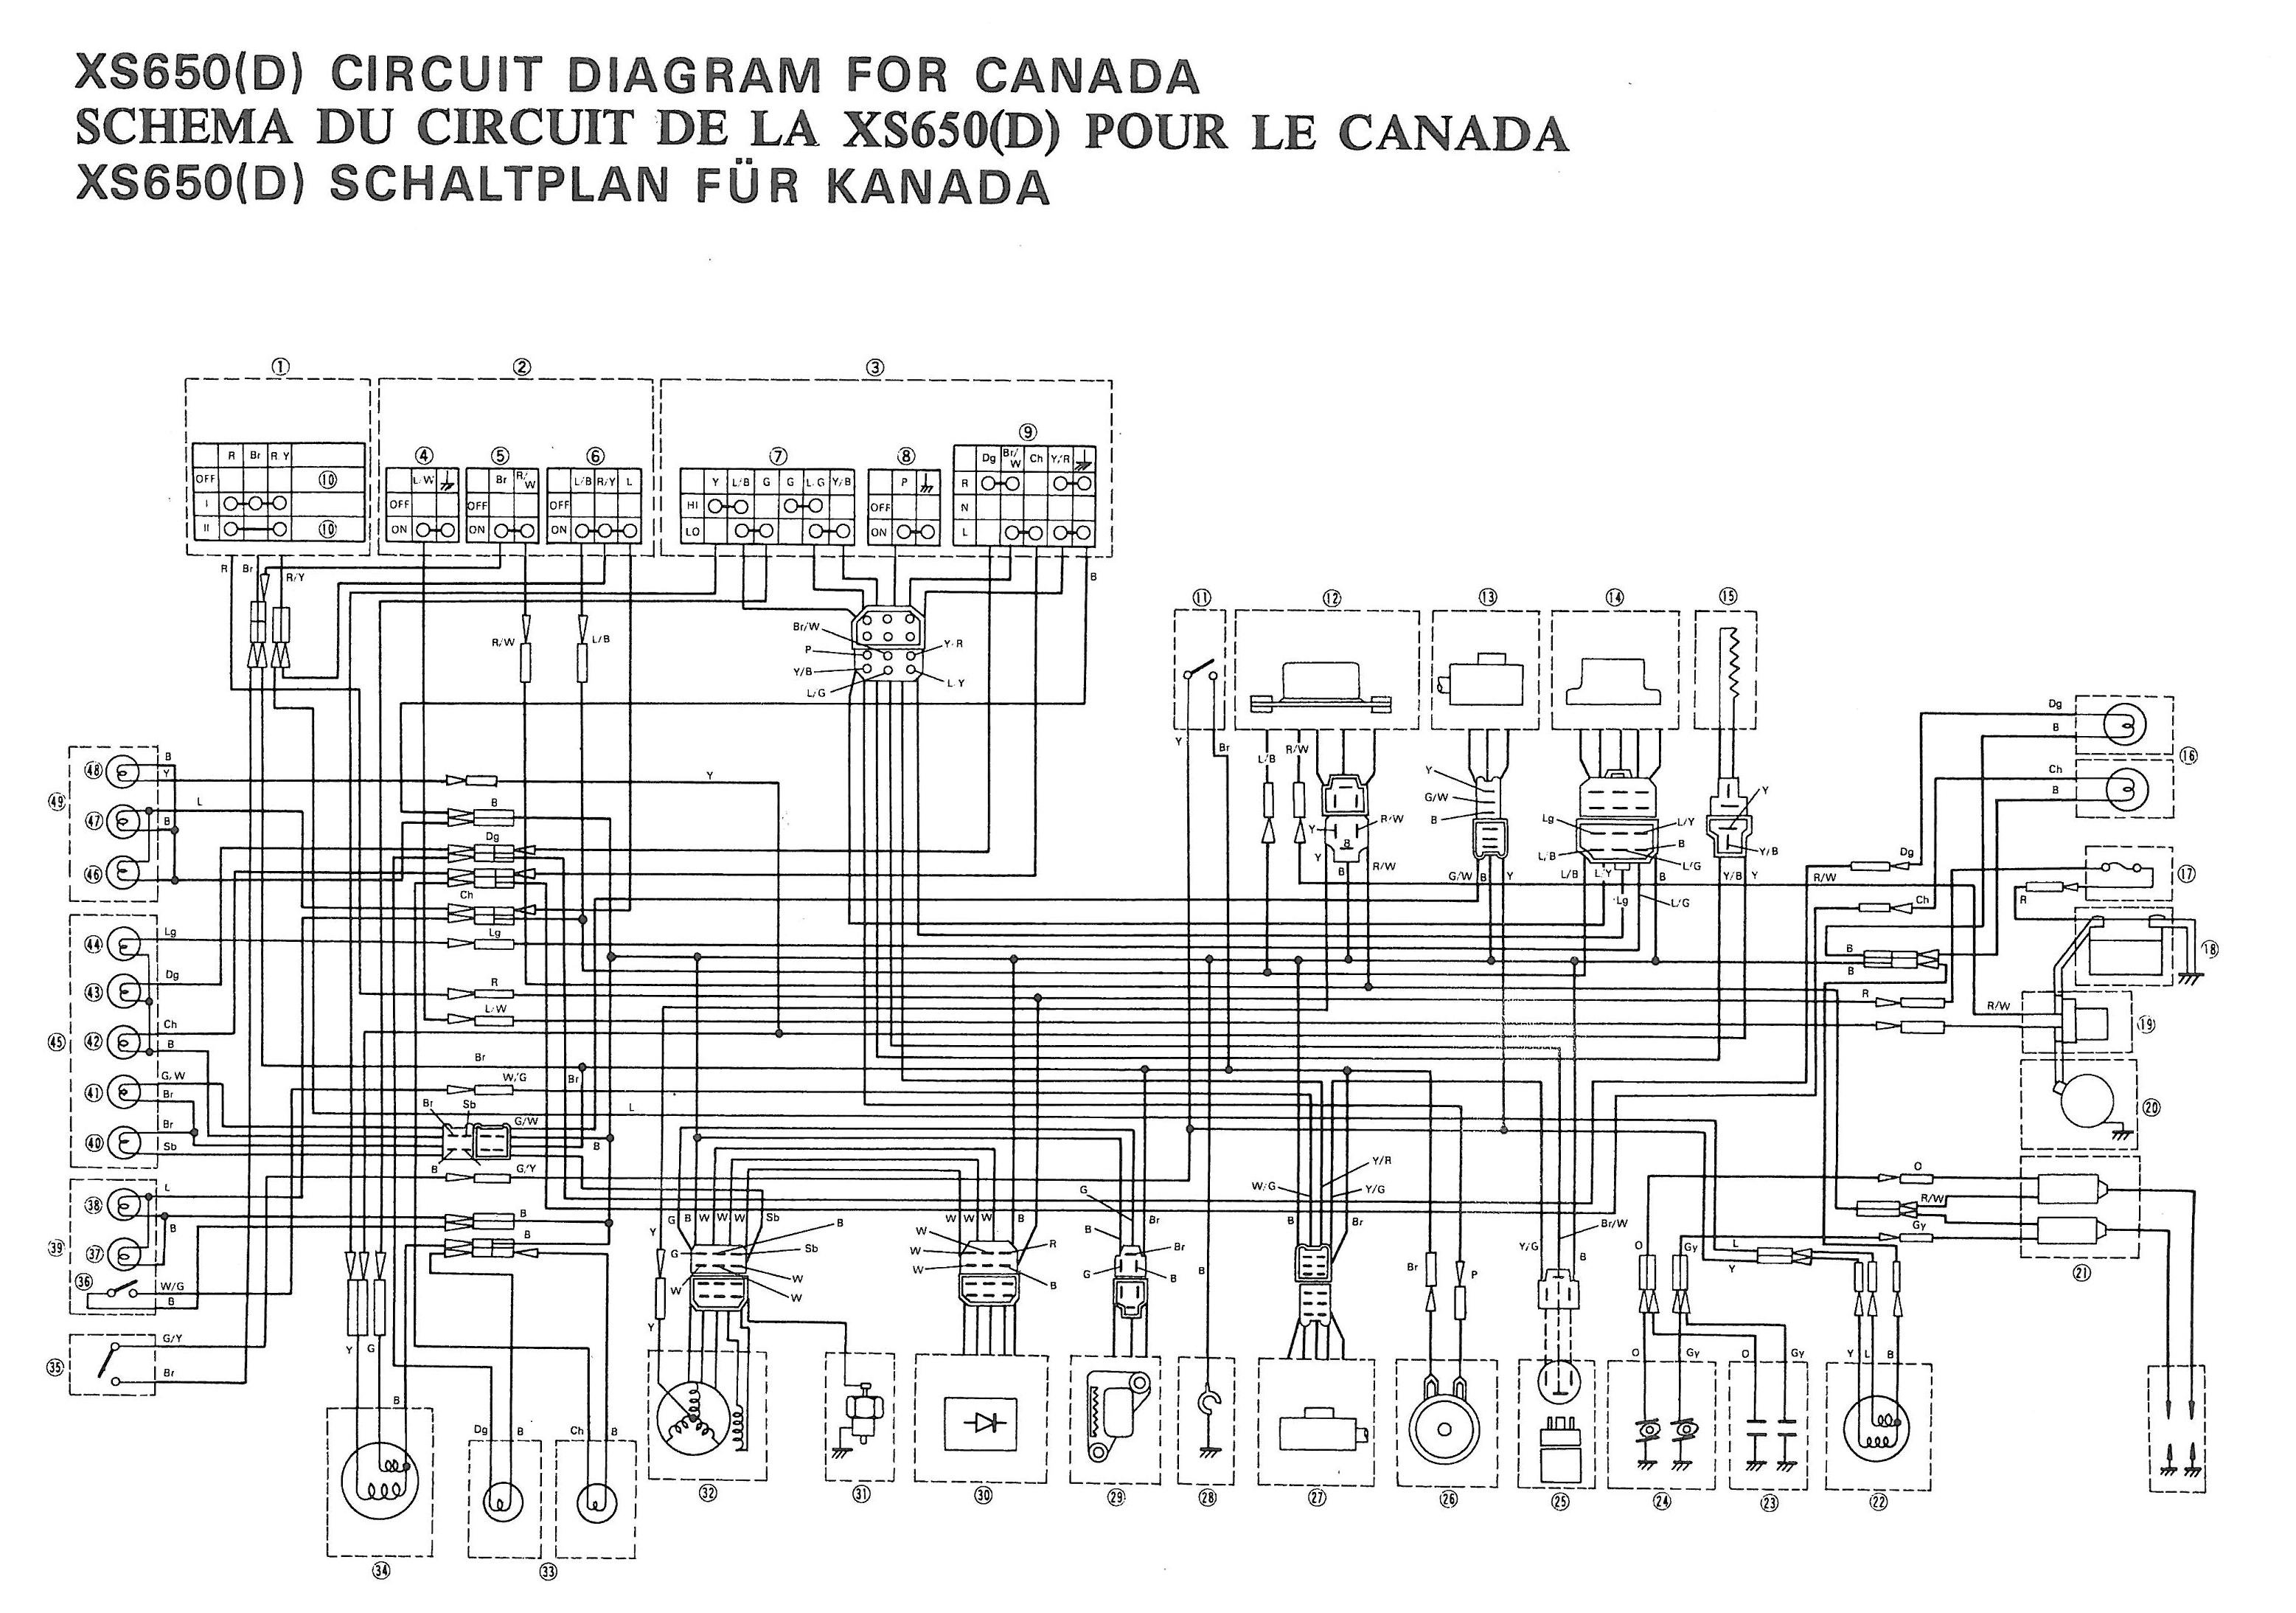 hight resolution of 1979 yamaha xs750 special wiring diagram hobbiesxstyle 1981 xs650 wiring diagram 1978 yamaha xs650 wiring diagram